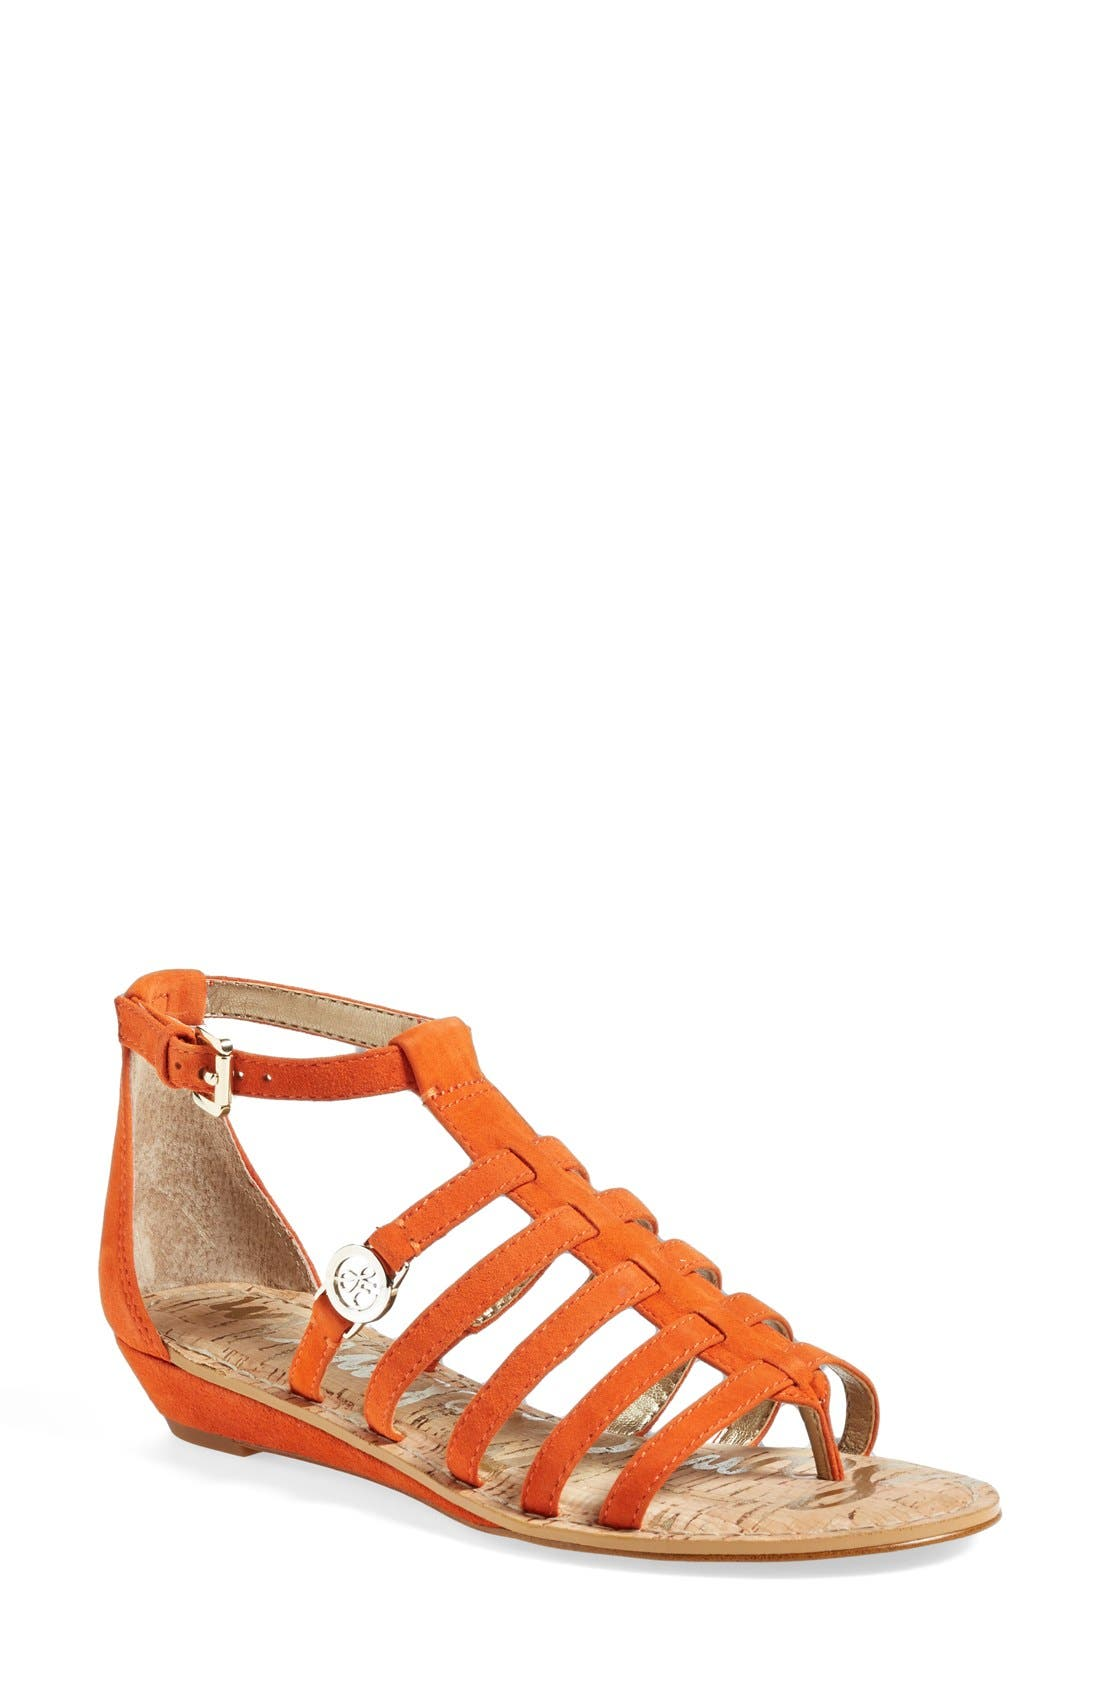 Alternate Image 1 Selected - Sam Edelman 'Donna' Gladiator Sandal (Women)